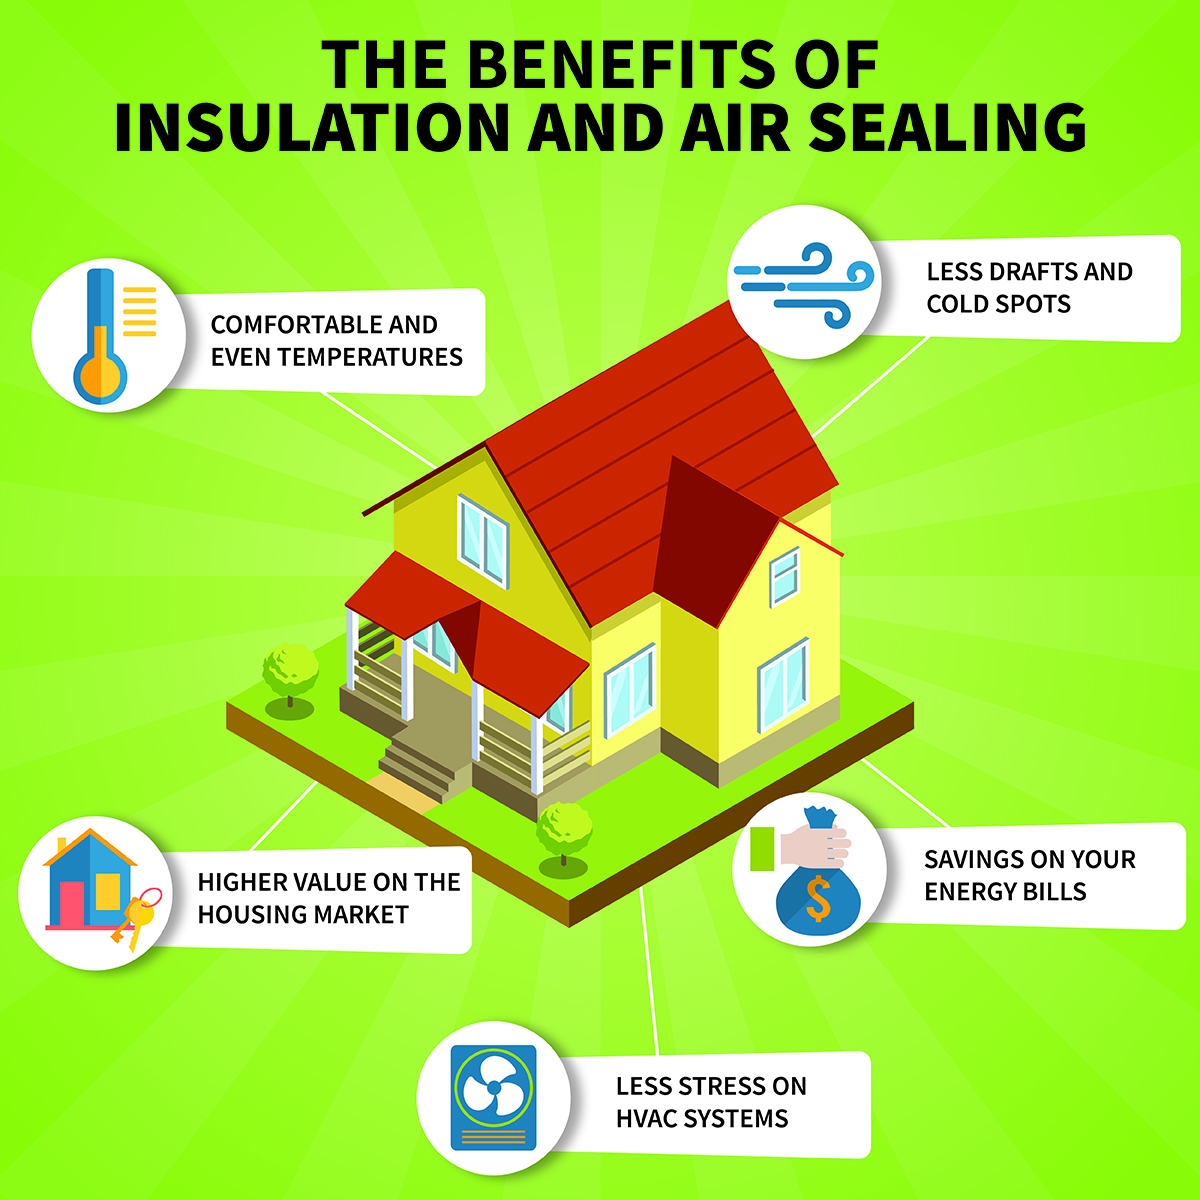 eco insulation and the benefits of insulation and air sealing